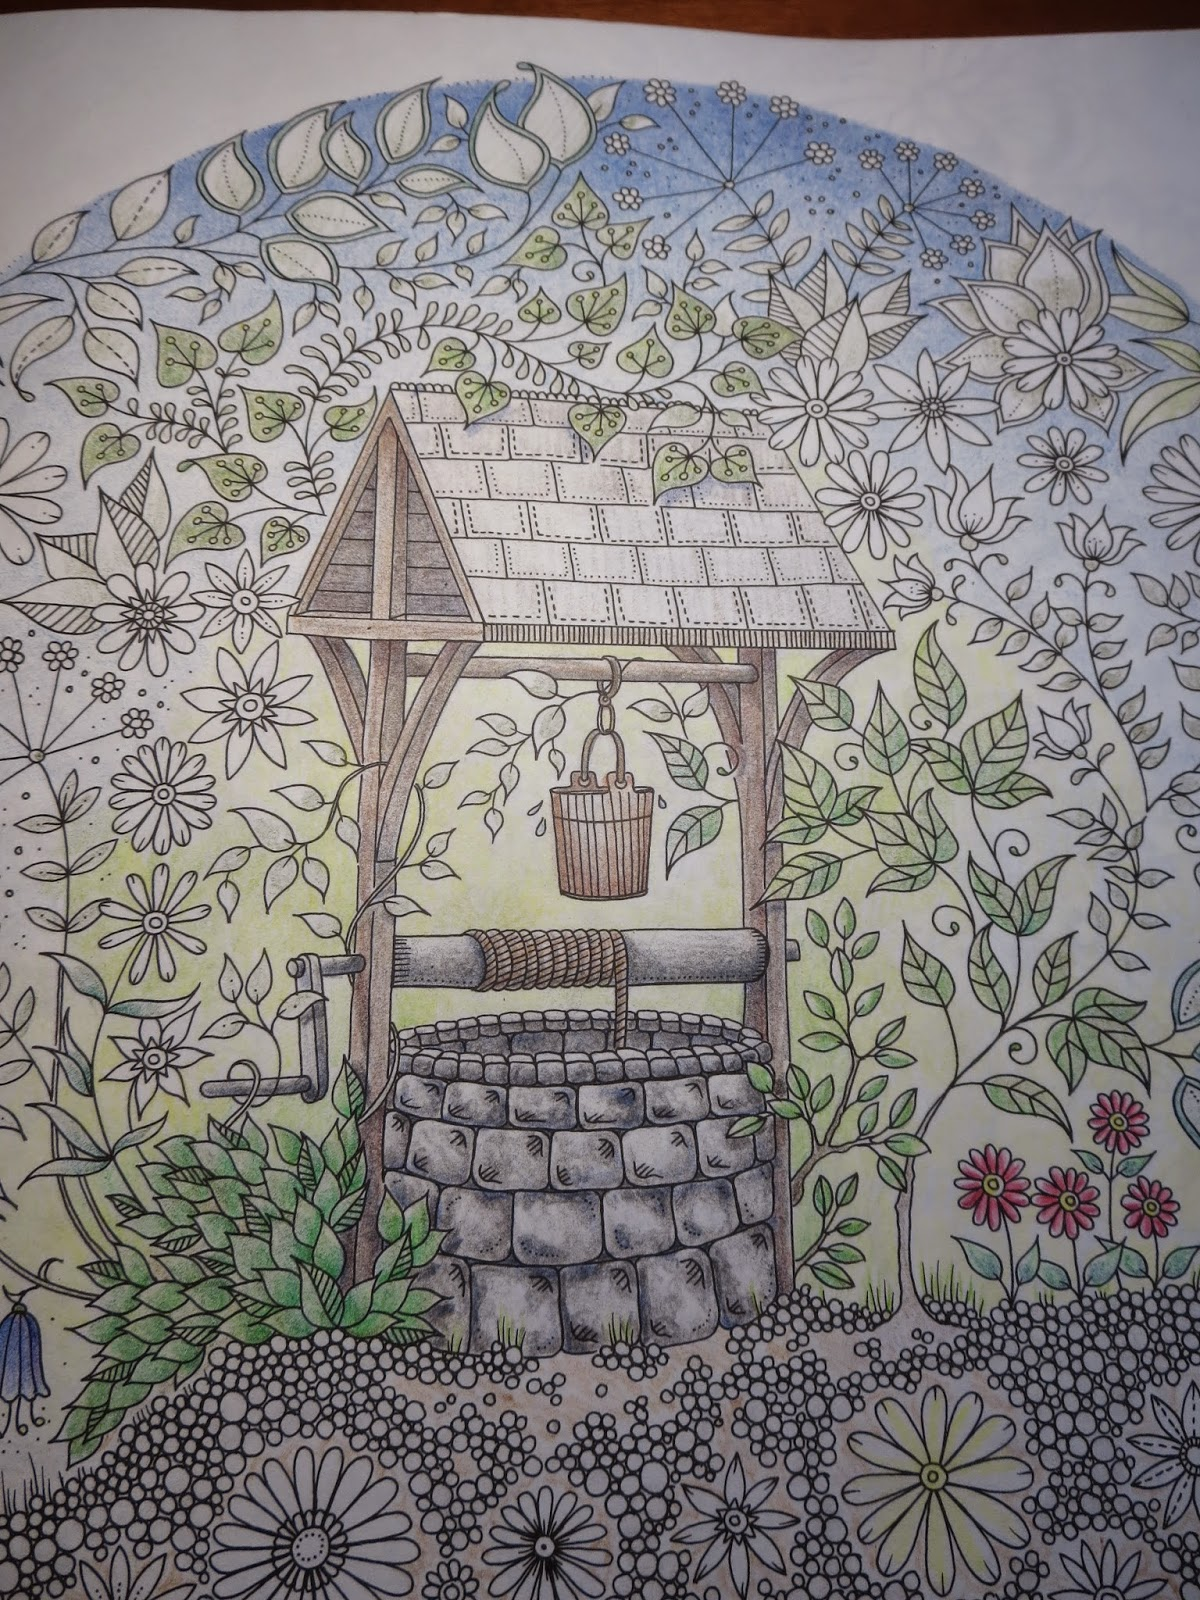 Passion for Pencils: My Secret Garden colouring book, part 5